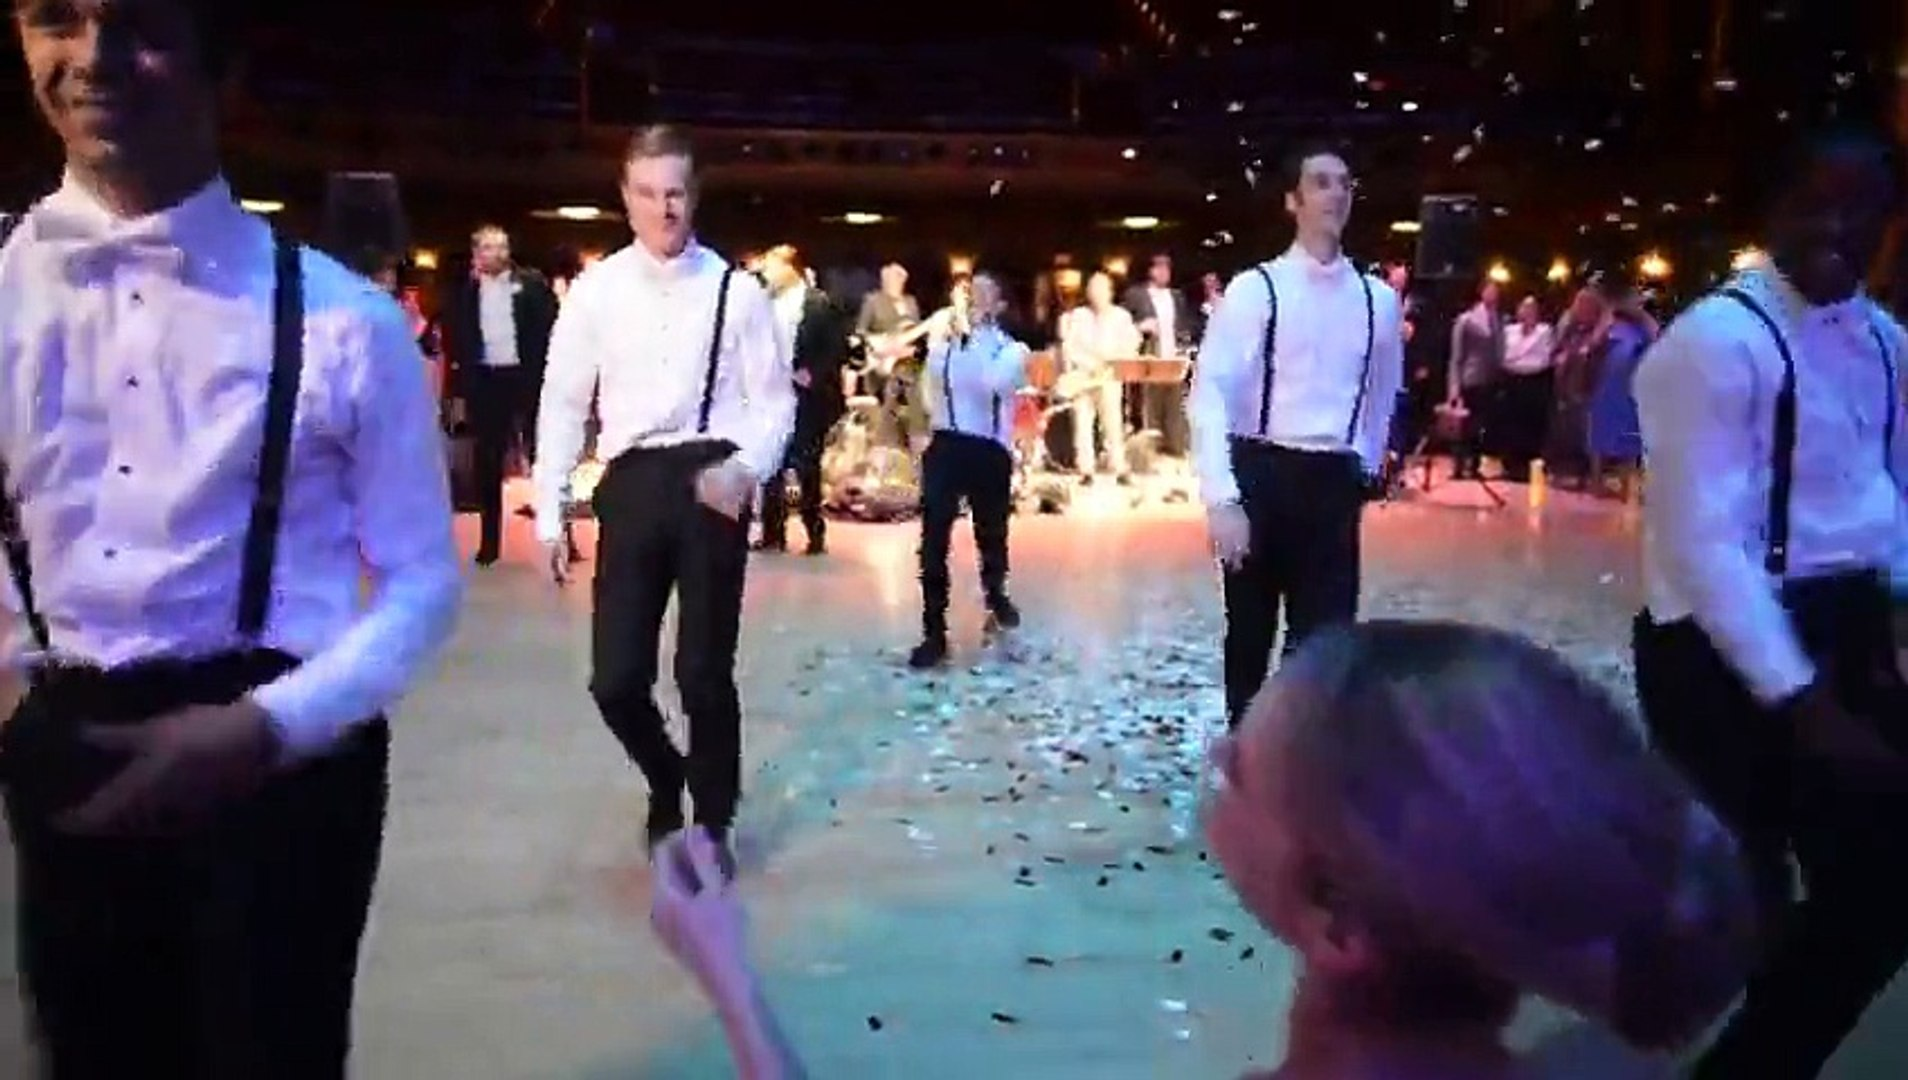 Ballerina Wedding_ Surprise Groomsmen Dance